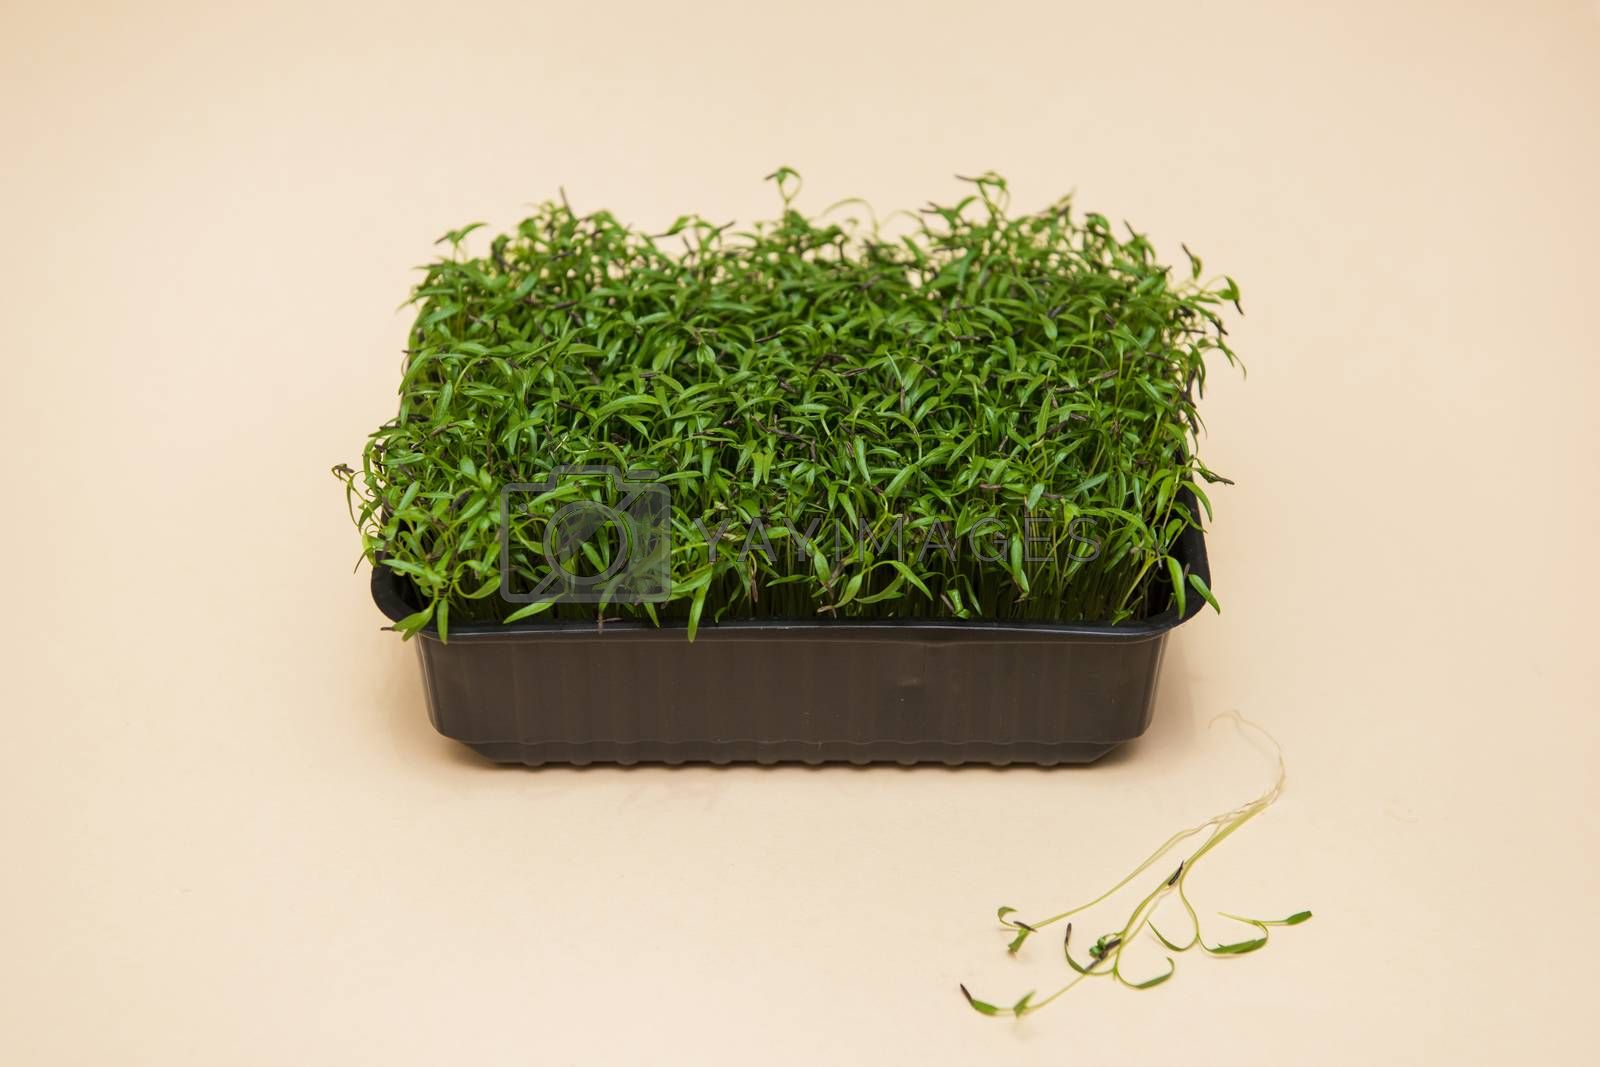 Micro greens sprouts of amaranth on beige background. Concept of superfood and healthy organic food